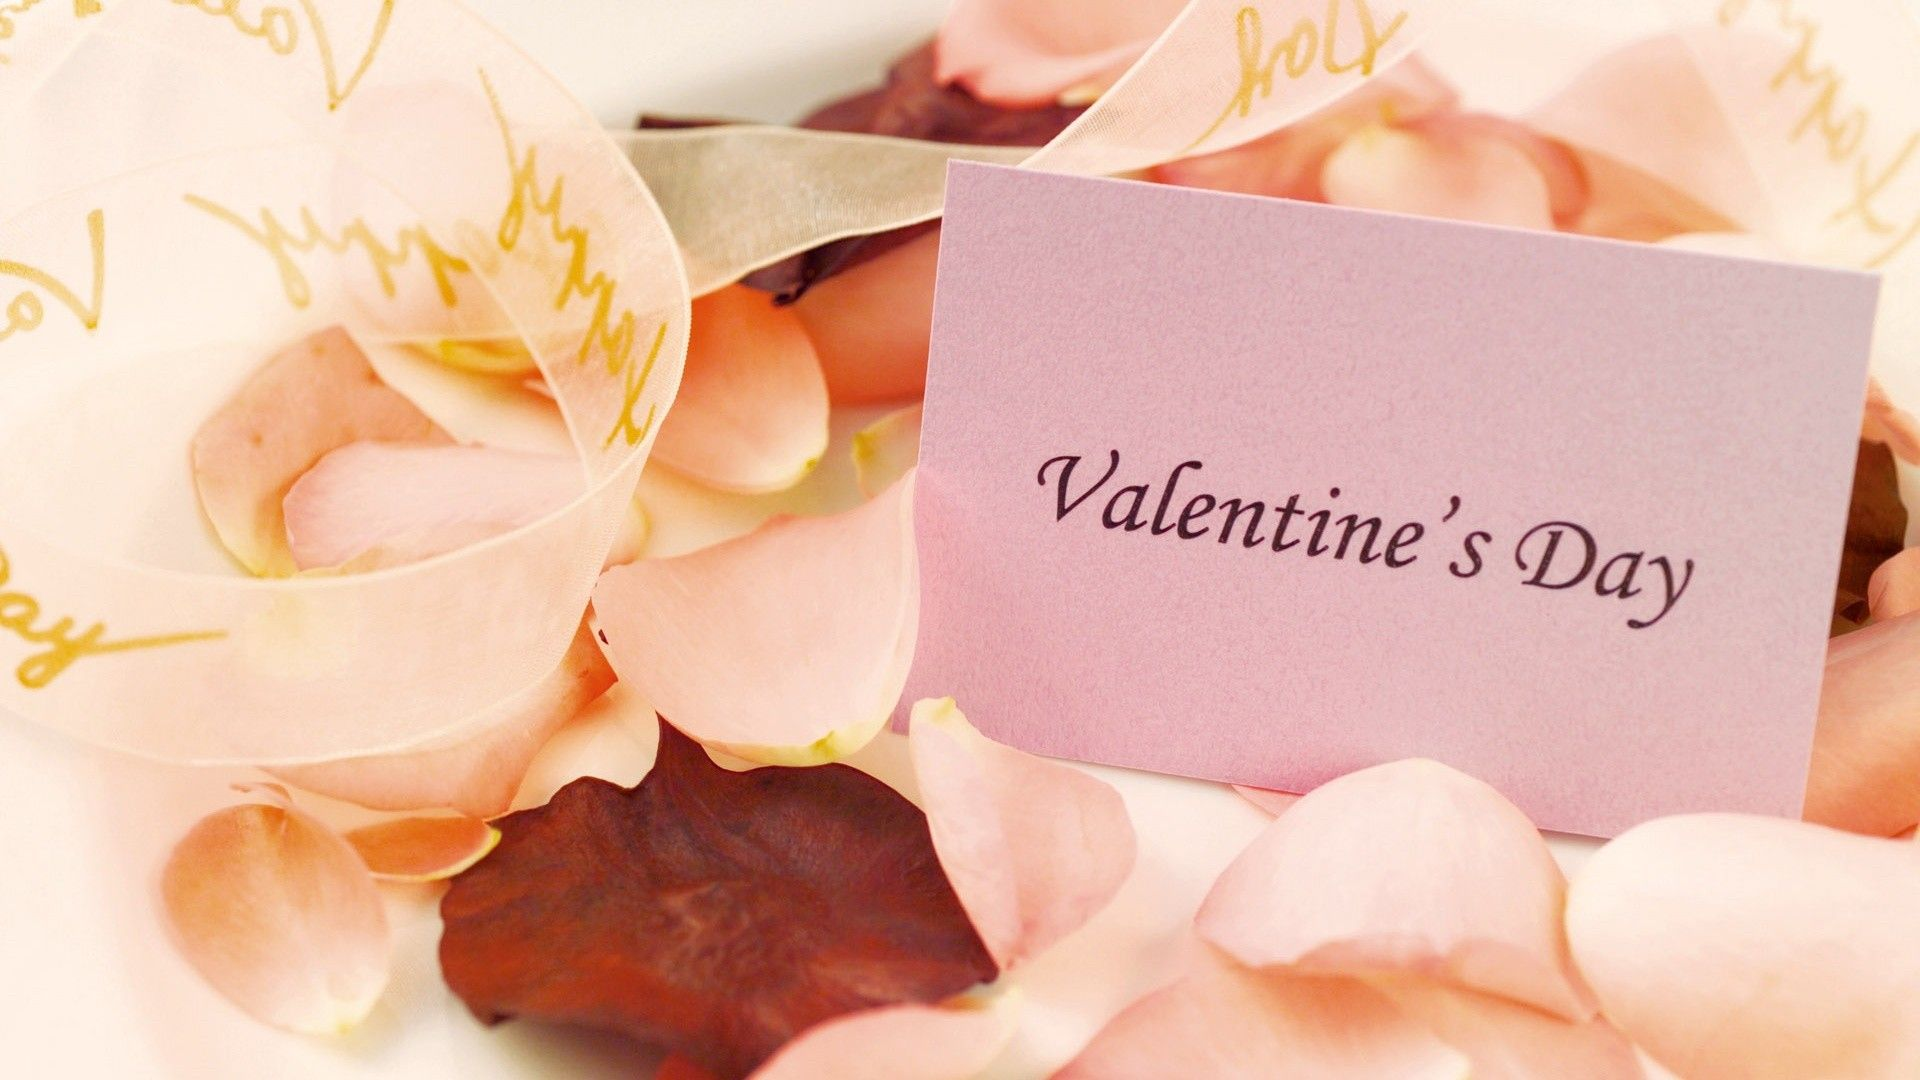 Valentines Day Cards Ideas Holiday February 14th